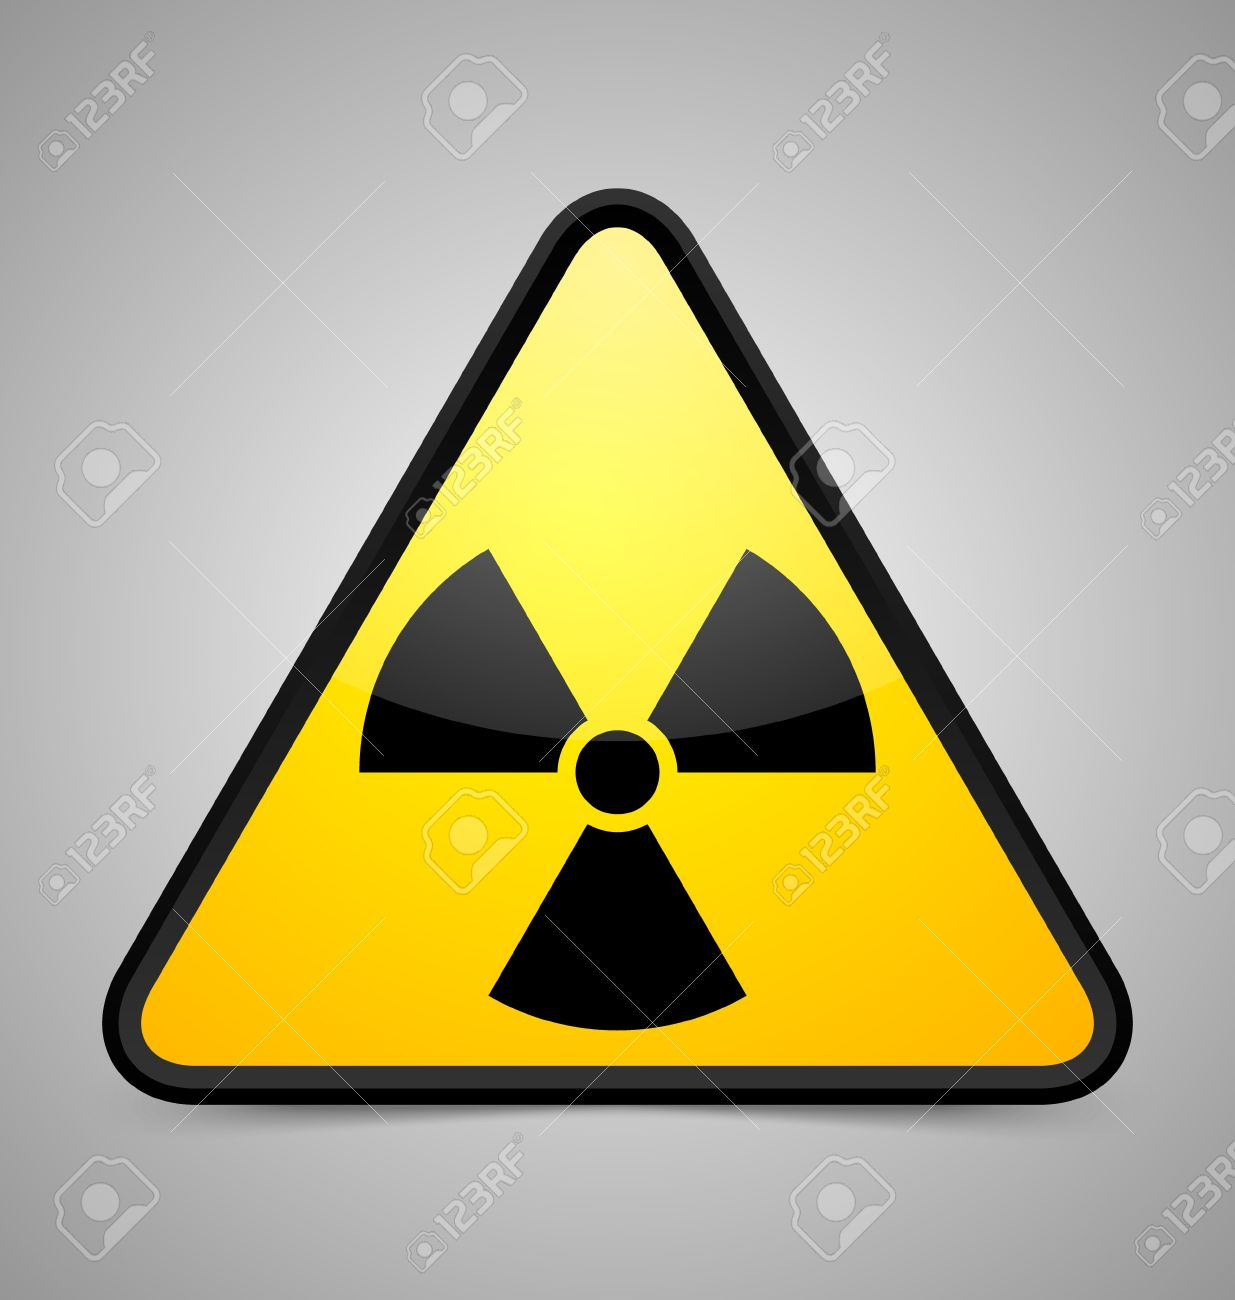 Nuclear symbol isolated on grey background royalty free cliparts nuclear symbol isolated on grey background stock vector 14765676 biocorpaavc Gallery